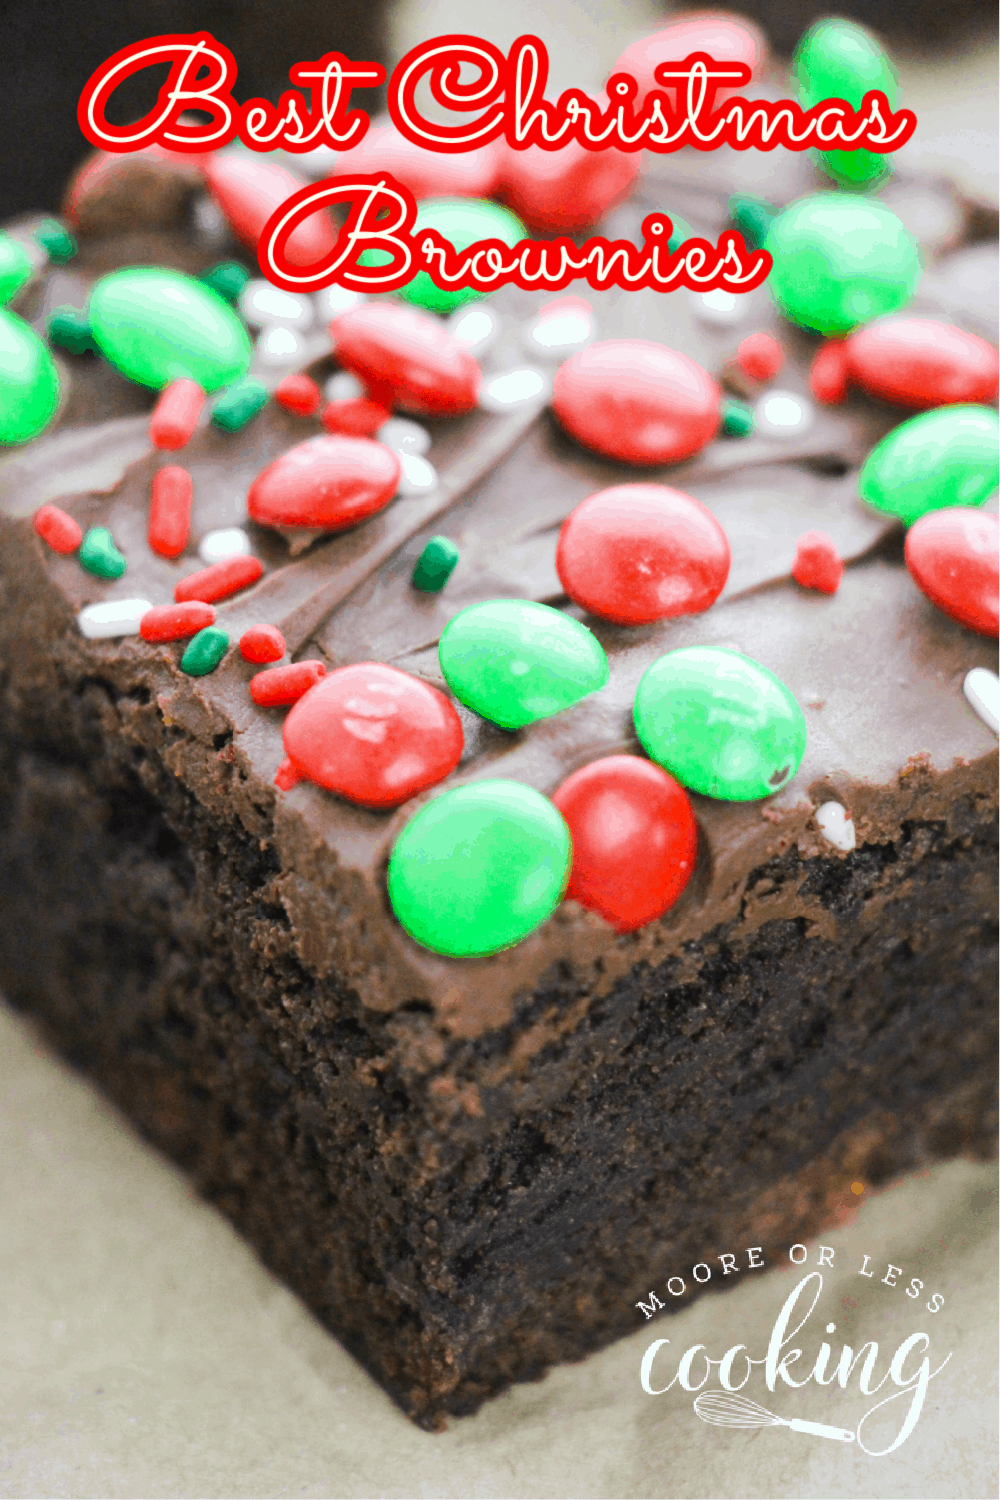 Best Christmas Brownies